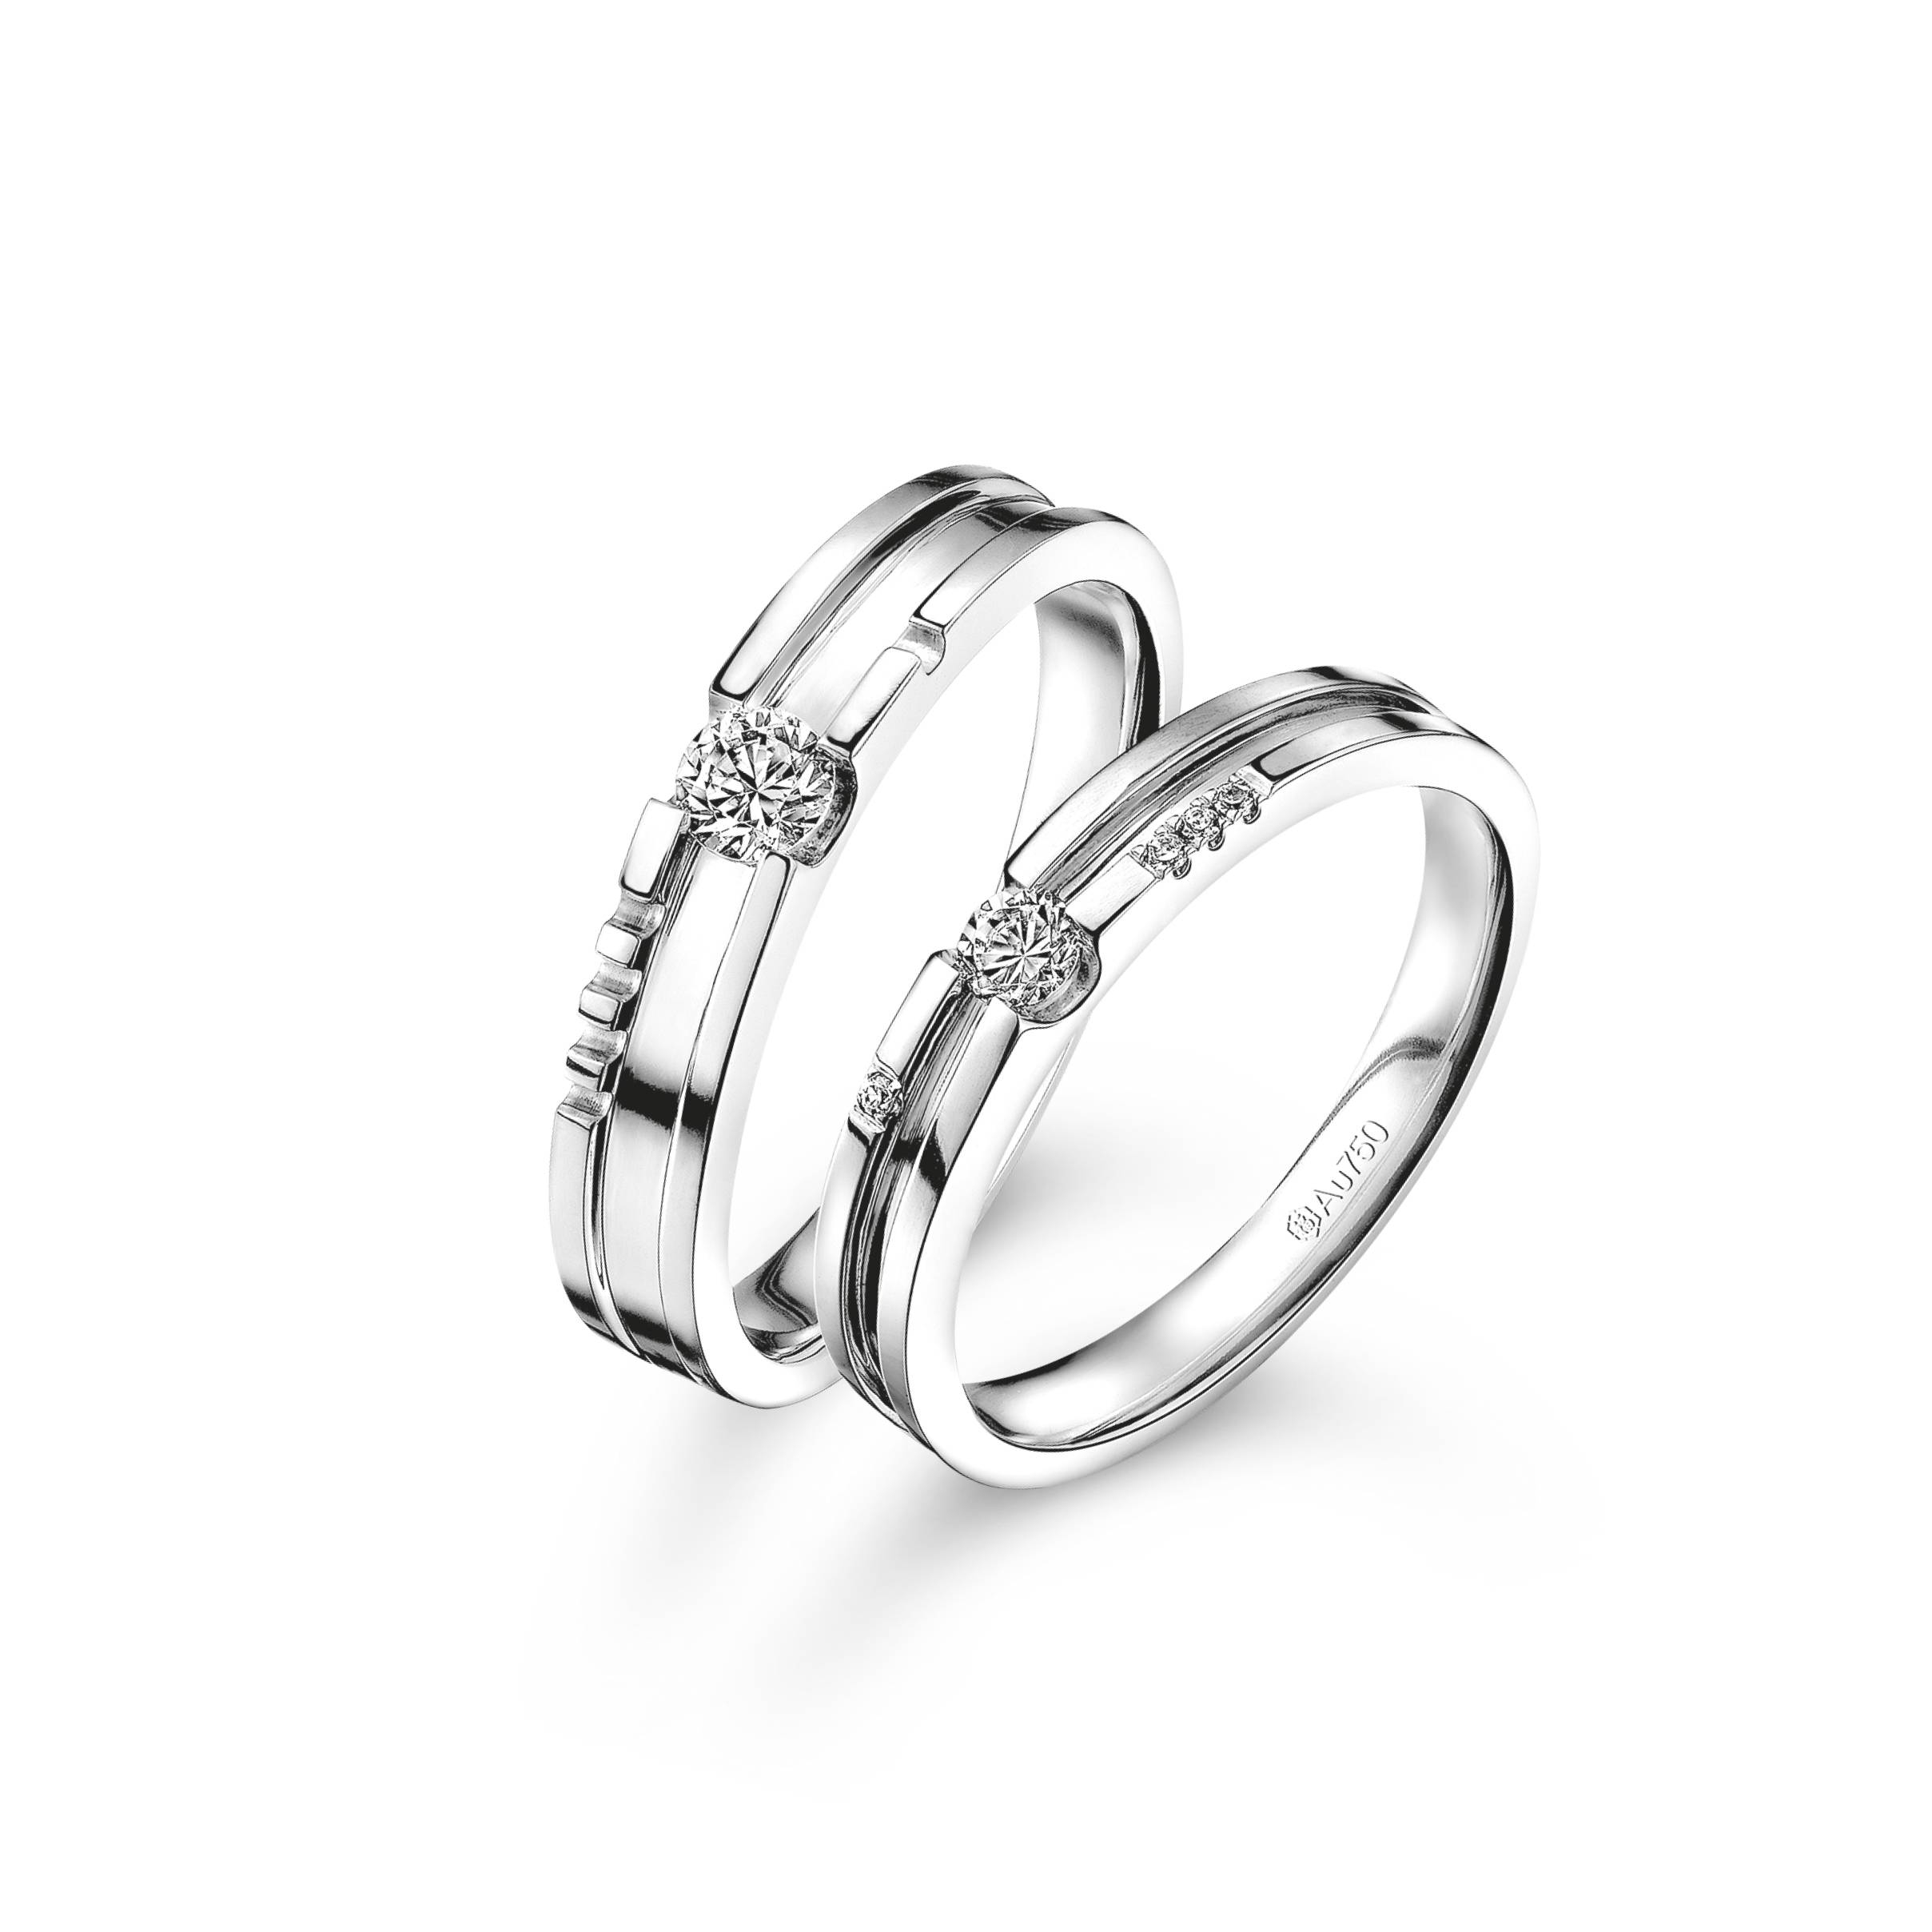 bridal rings diamond cheap unique hers bands white ring sets set gold wedding baguette of his matching round size jewellery under and full band